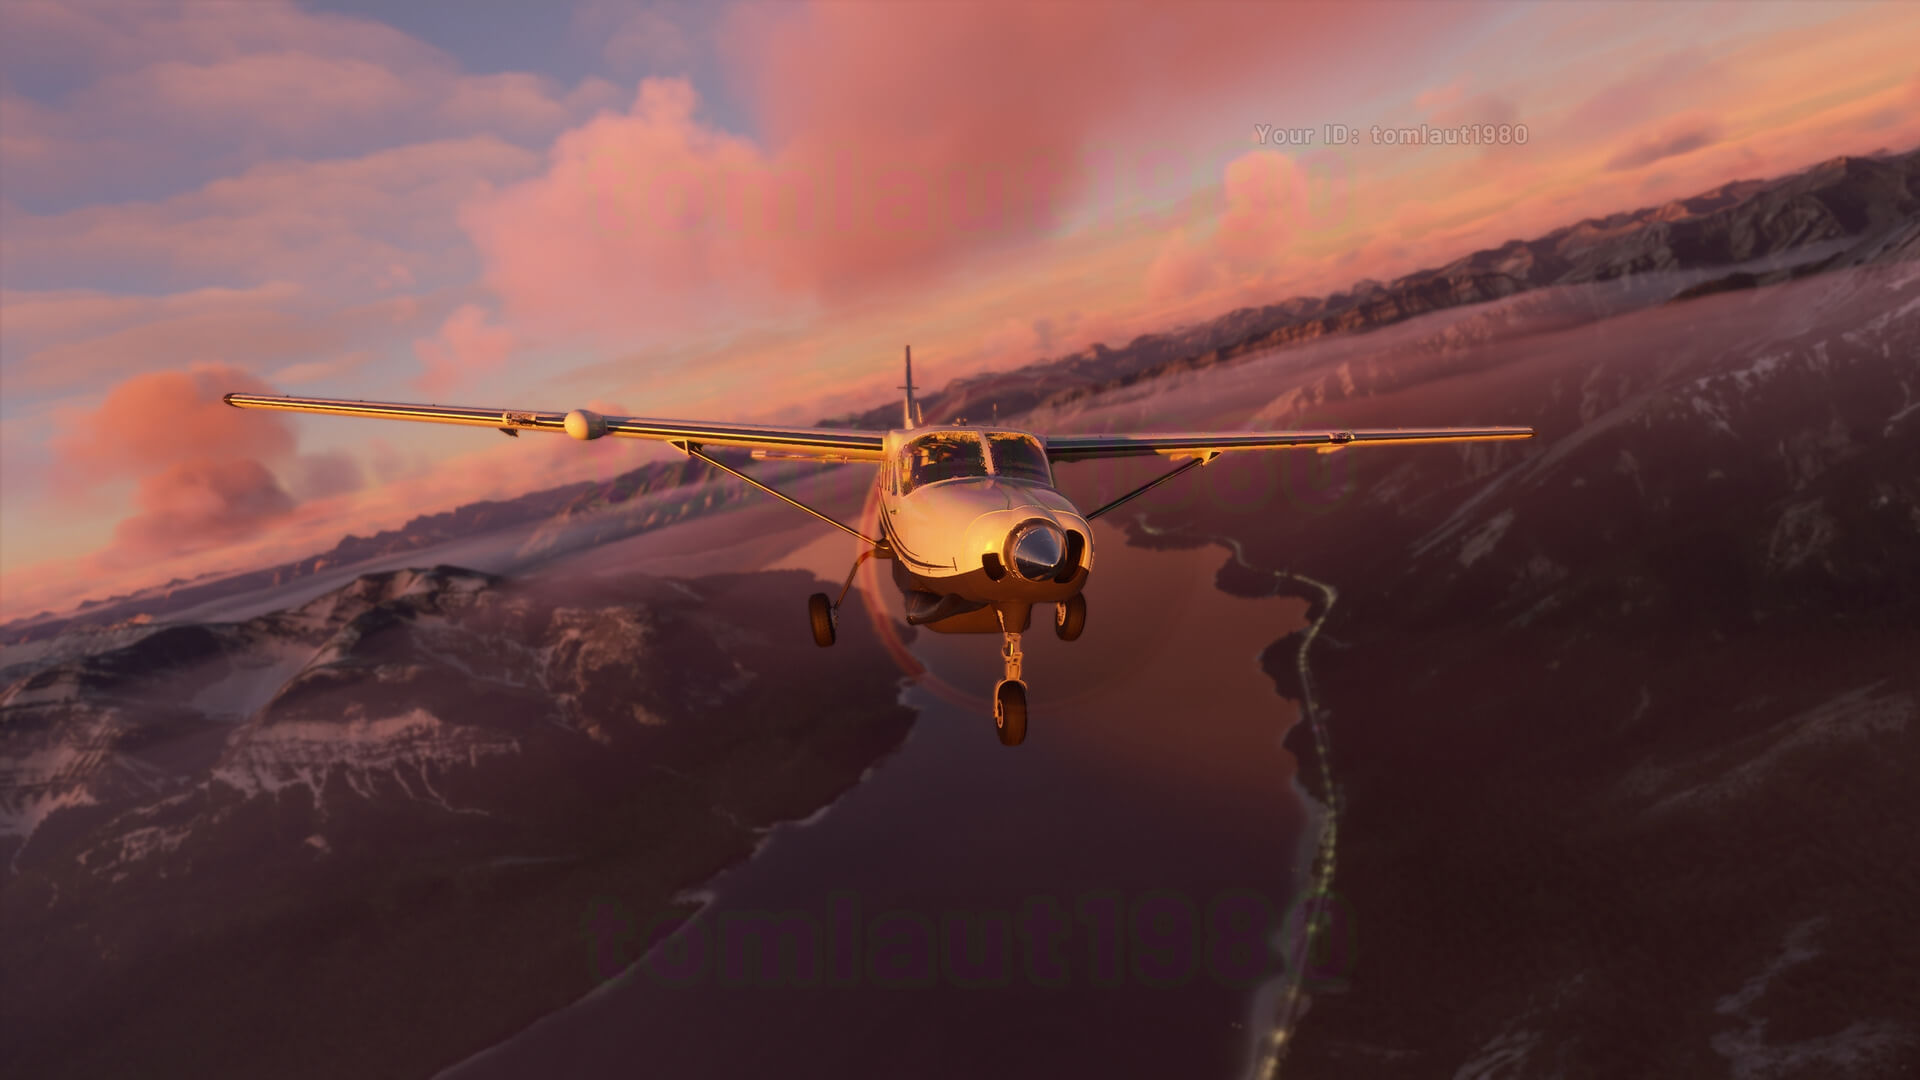 Microsoft Flight Simulator captura 3 avioneta